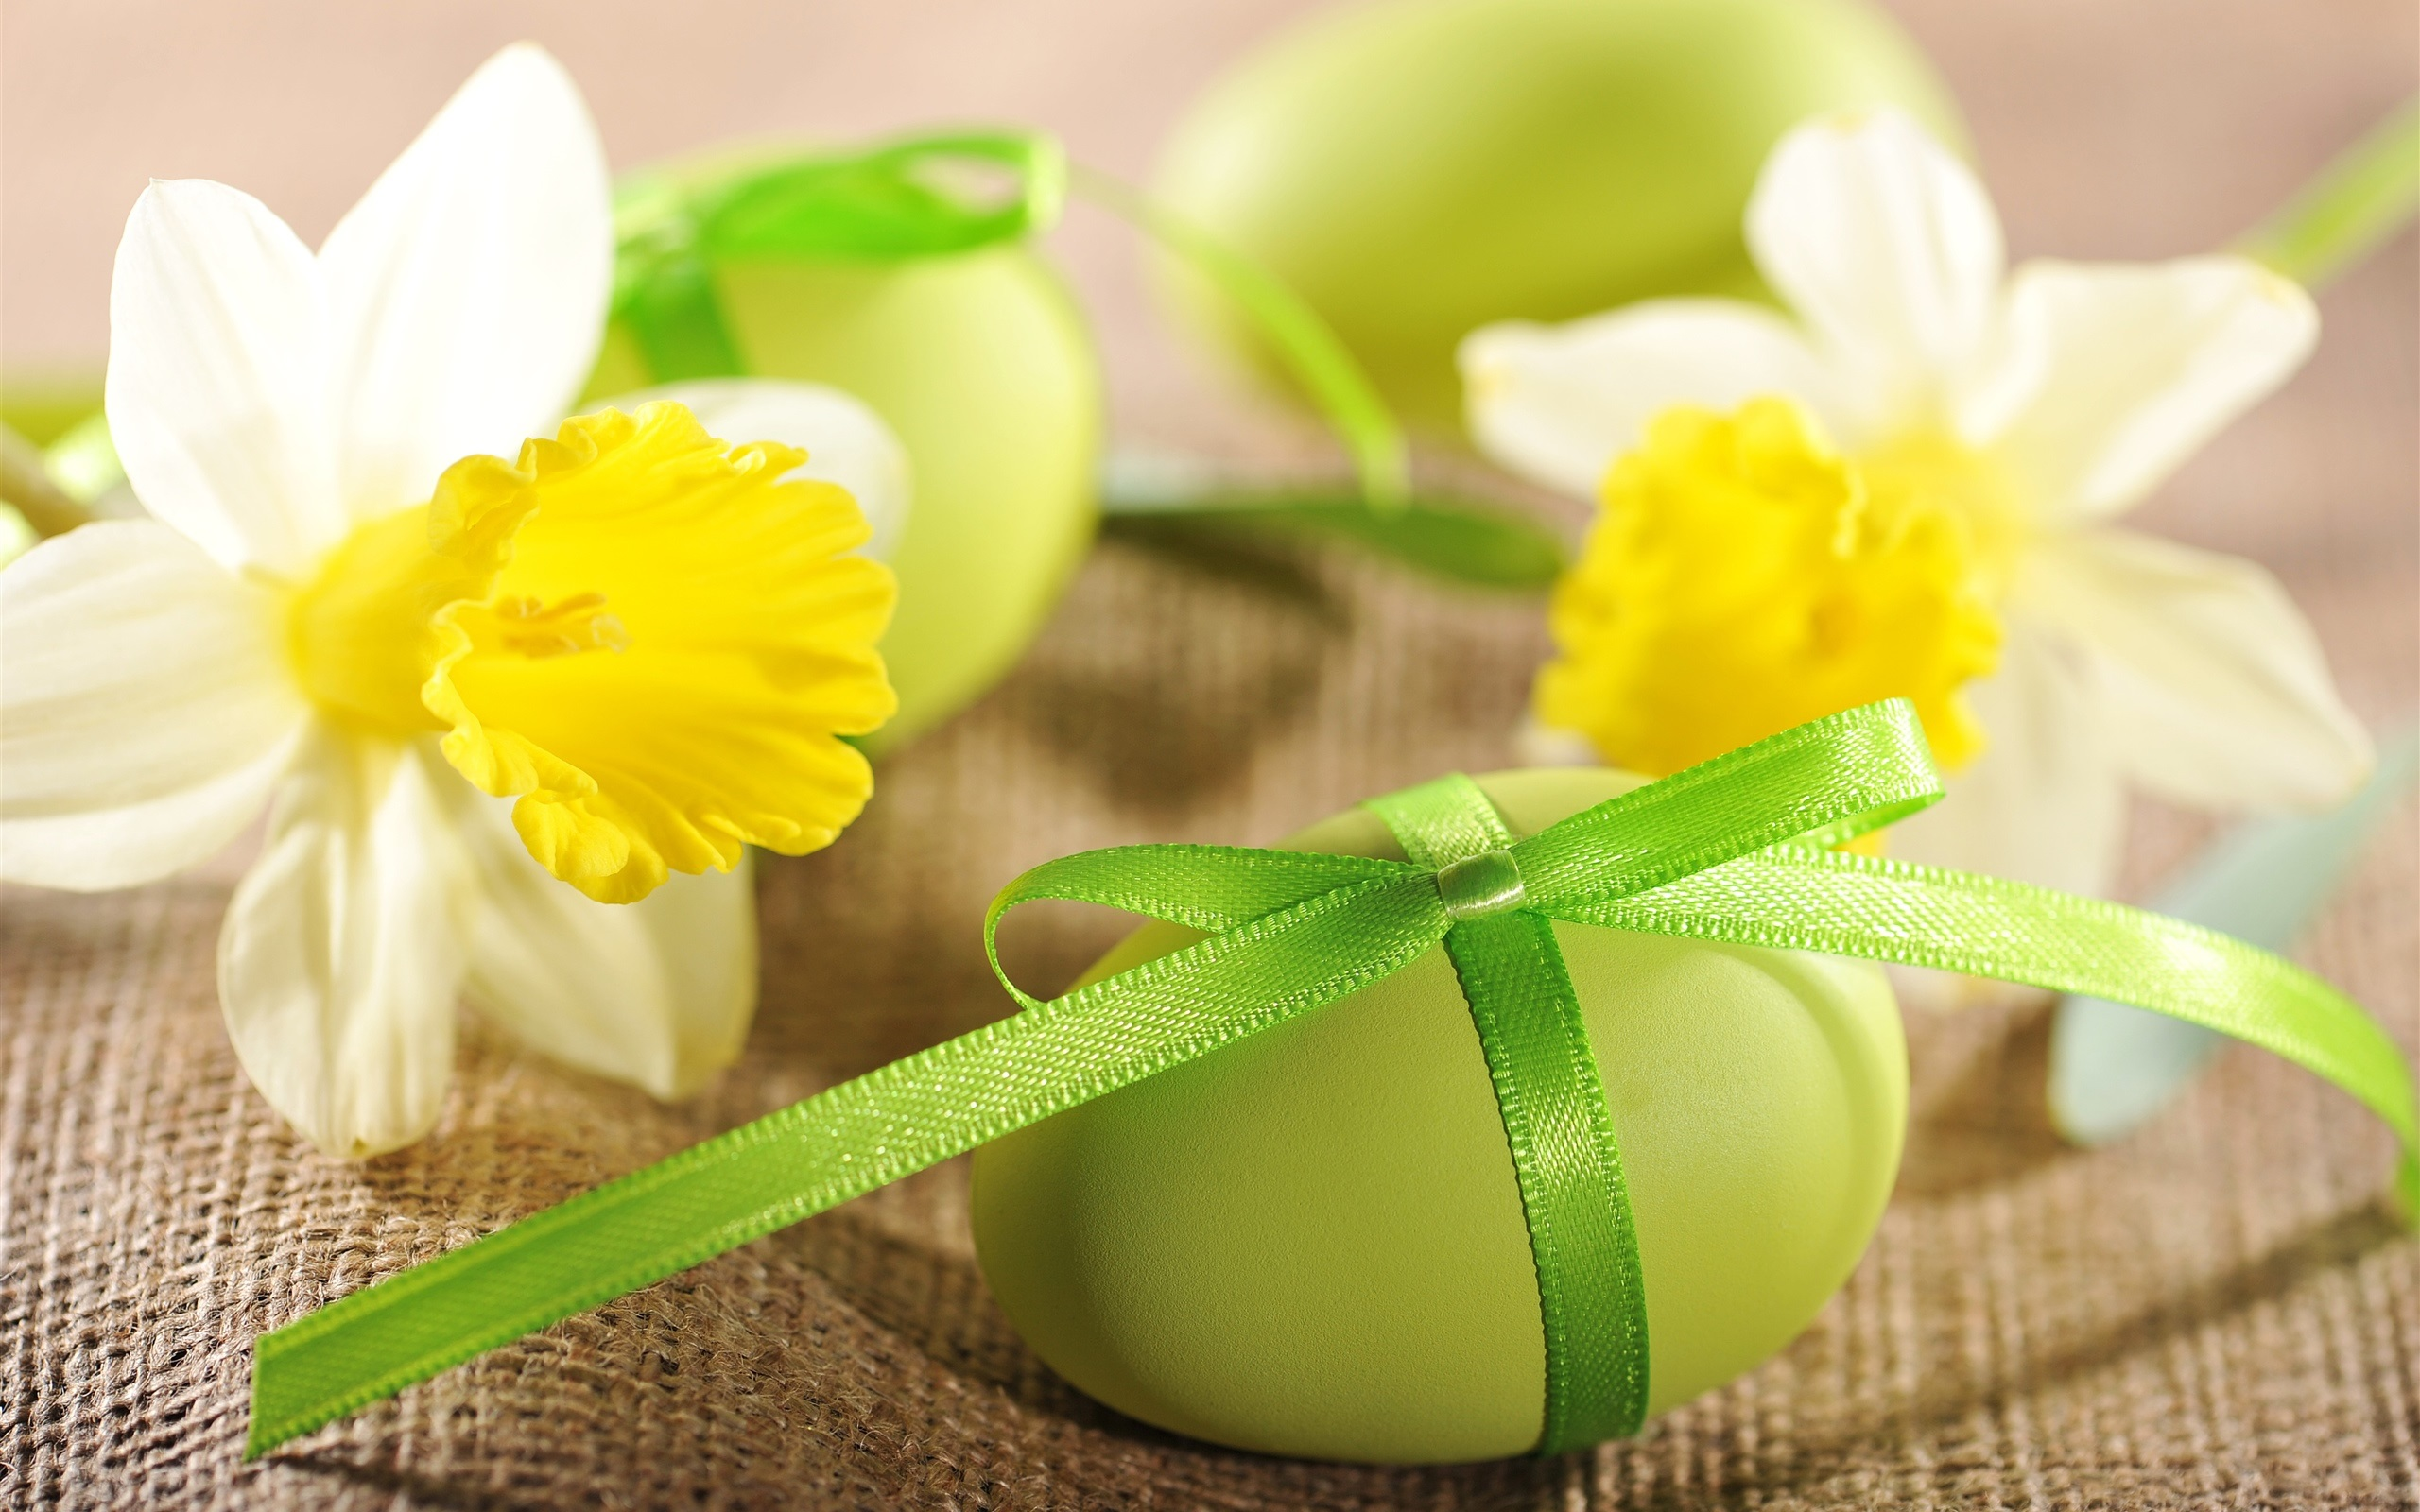 wallpaper easter eggs, flowers, daffodils 2560x1600 hd picture, image